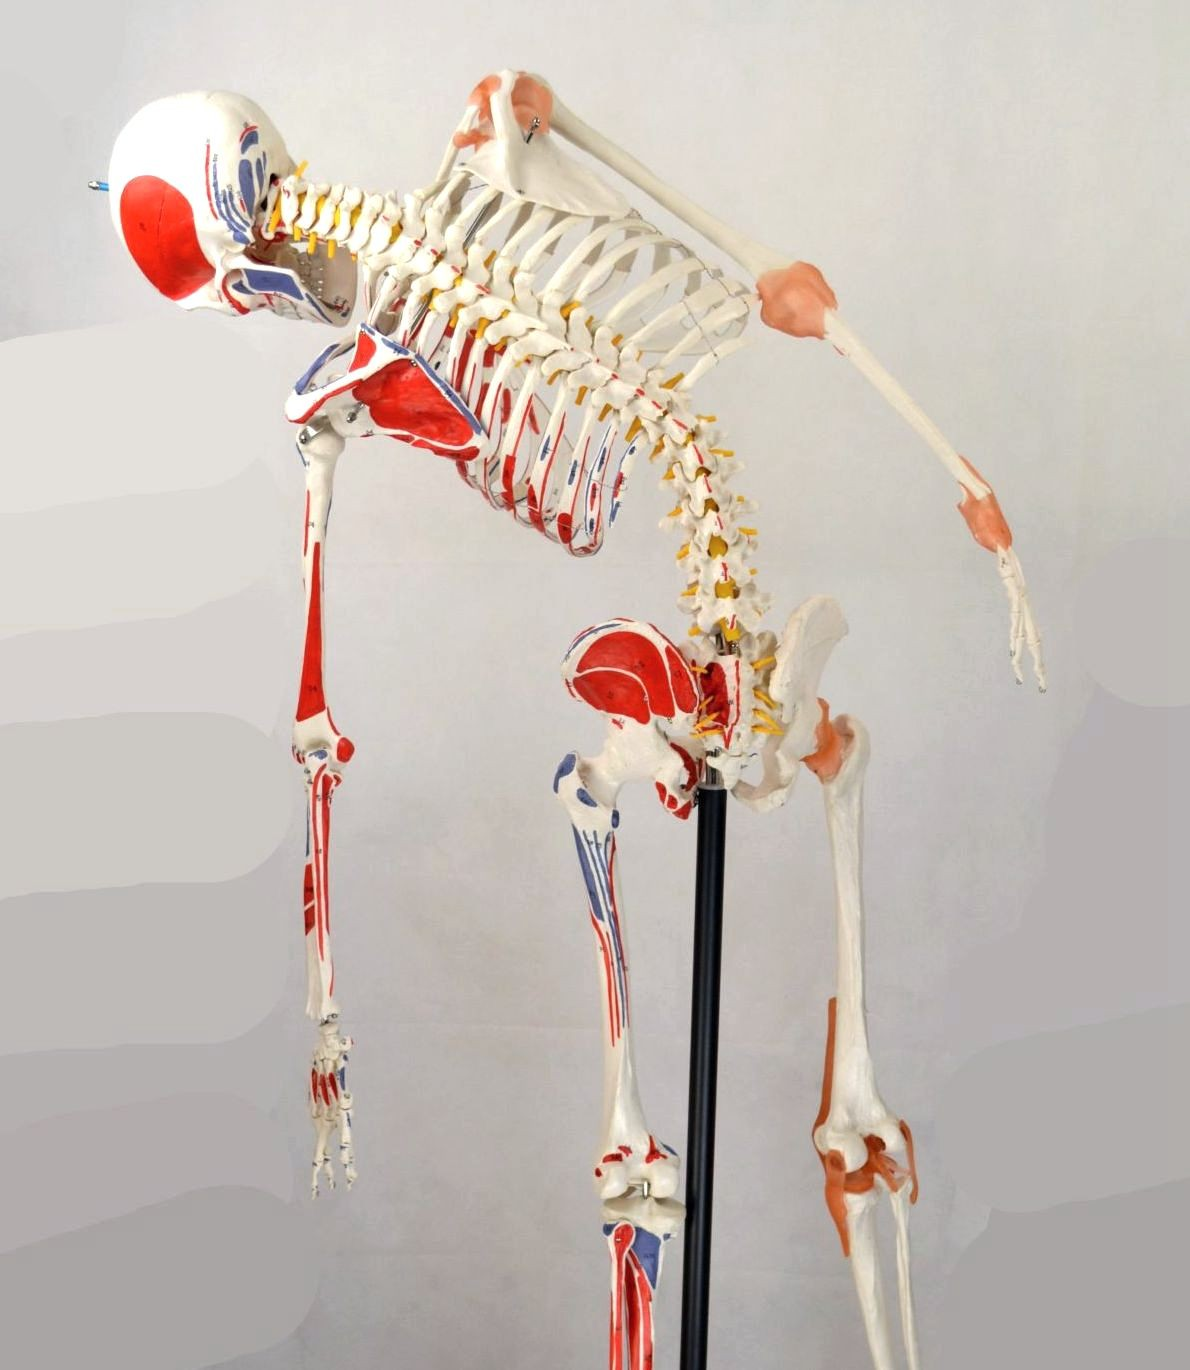 Skeleton,  with Flexible Spine, Articulated, w/Ligament & Muscle Insertions, Life Size, 170cm